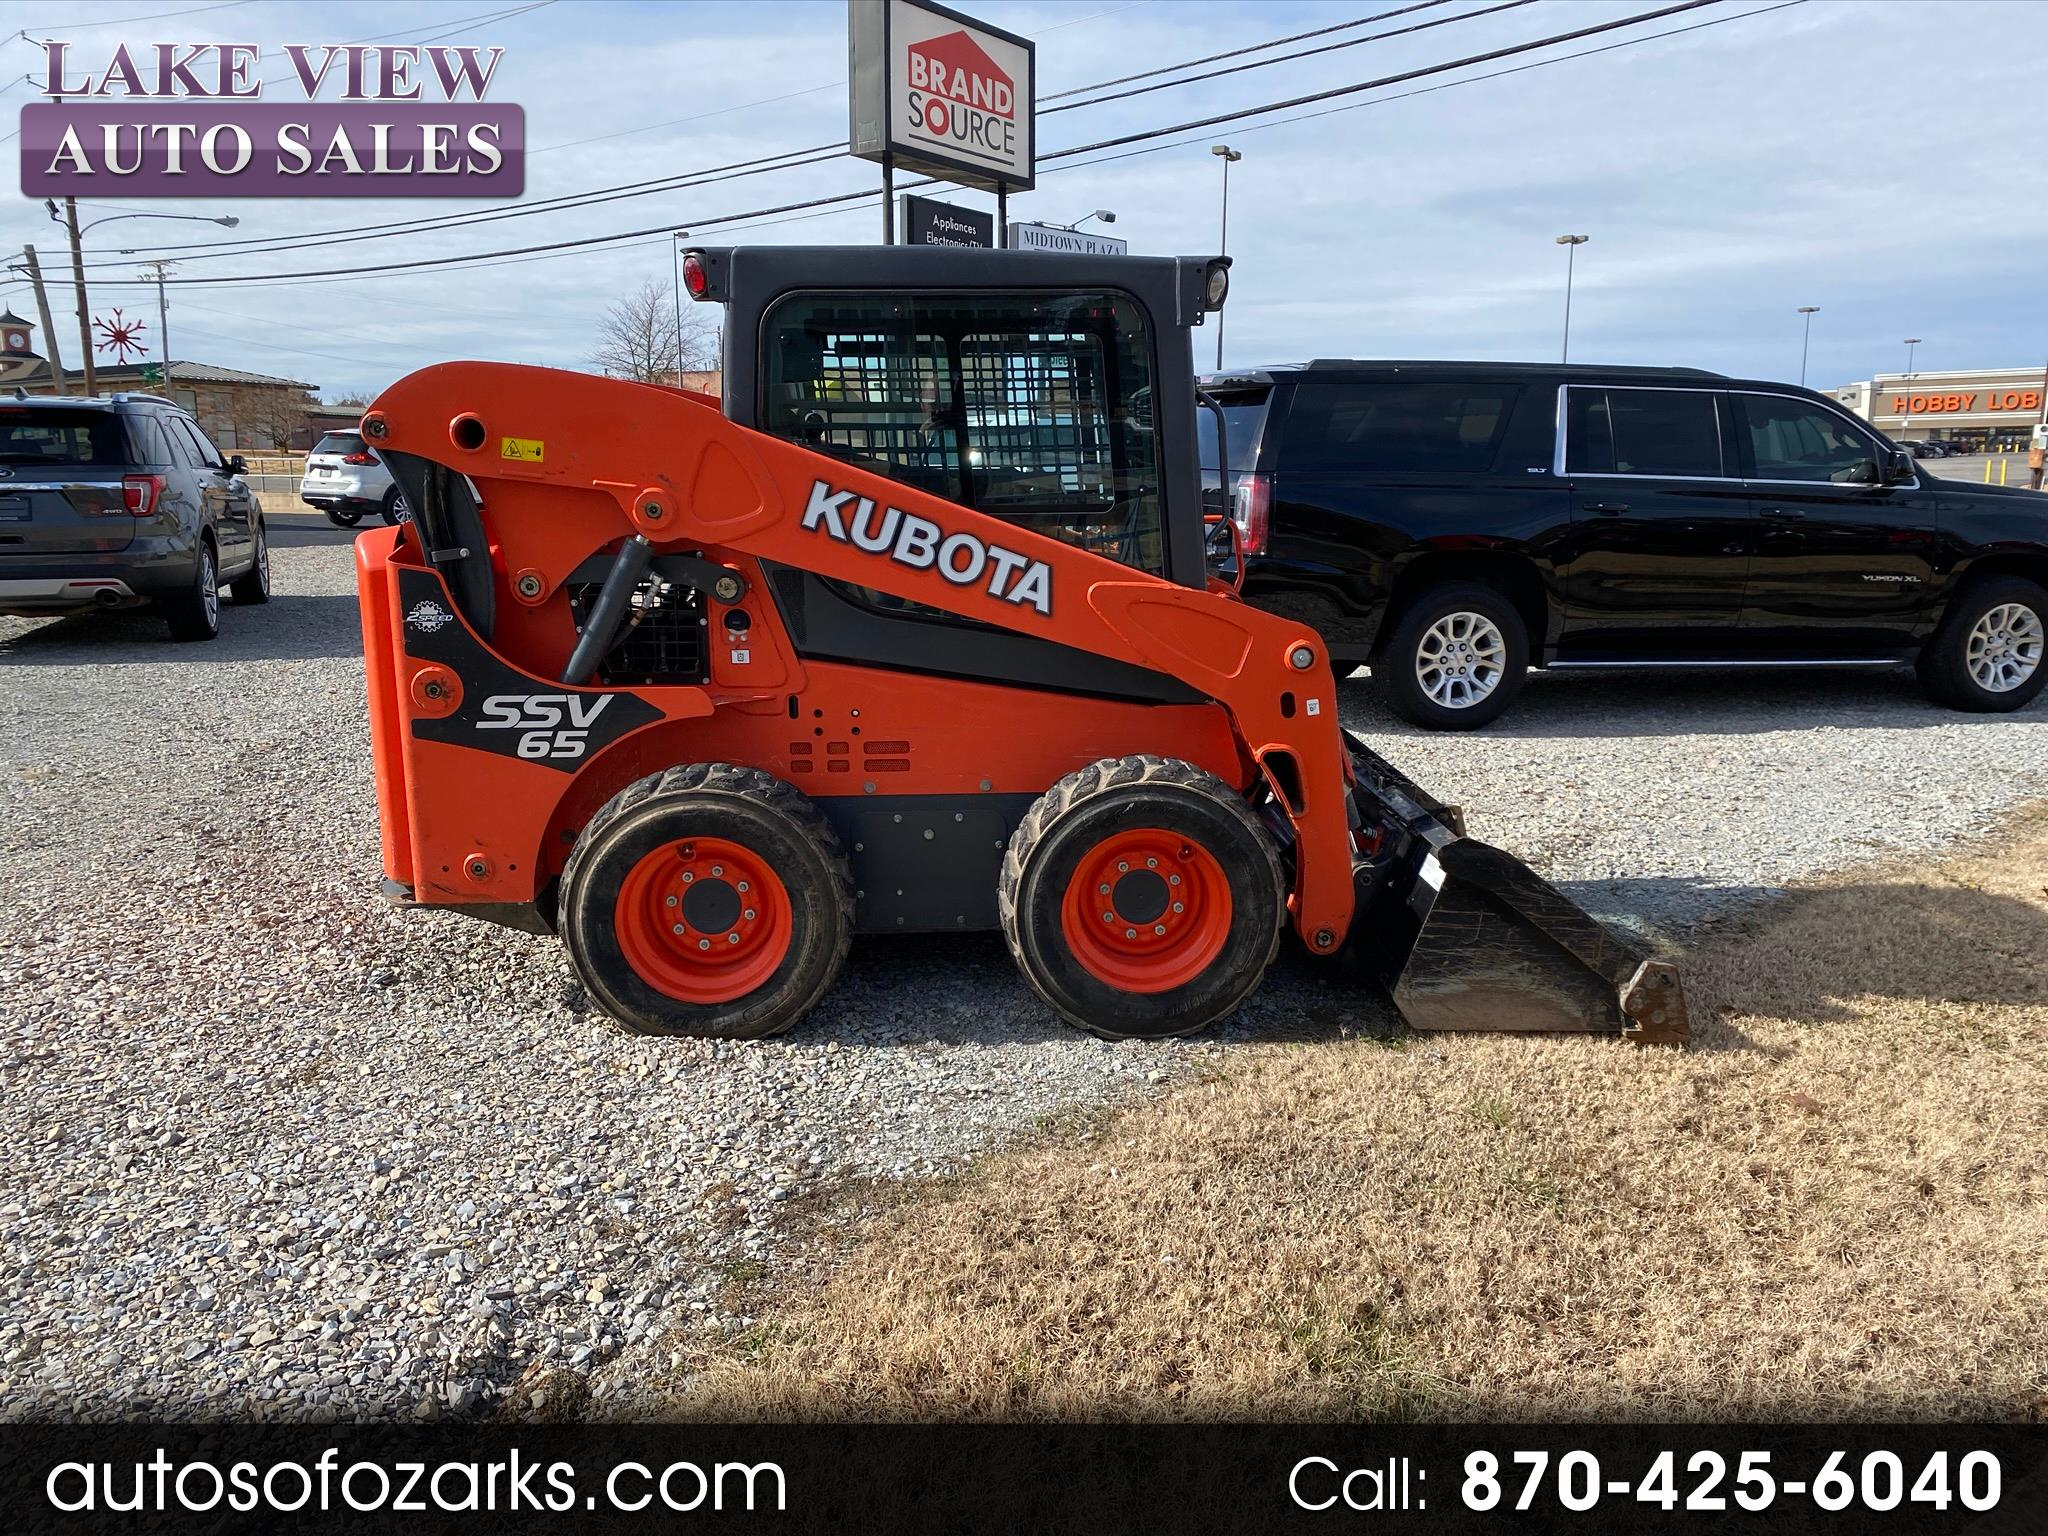 Used Kubota Farm Ssv65 For Sale In Mountain Home Ar